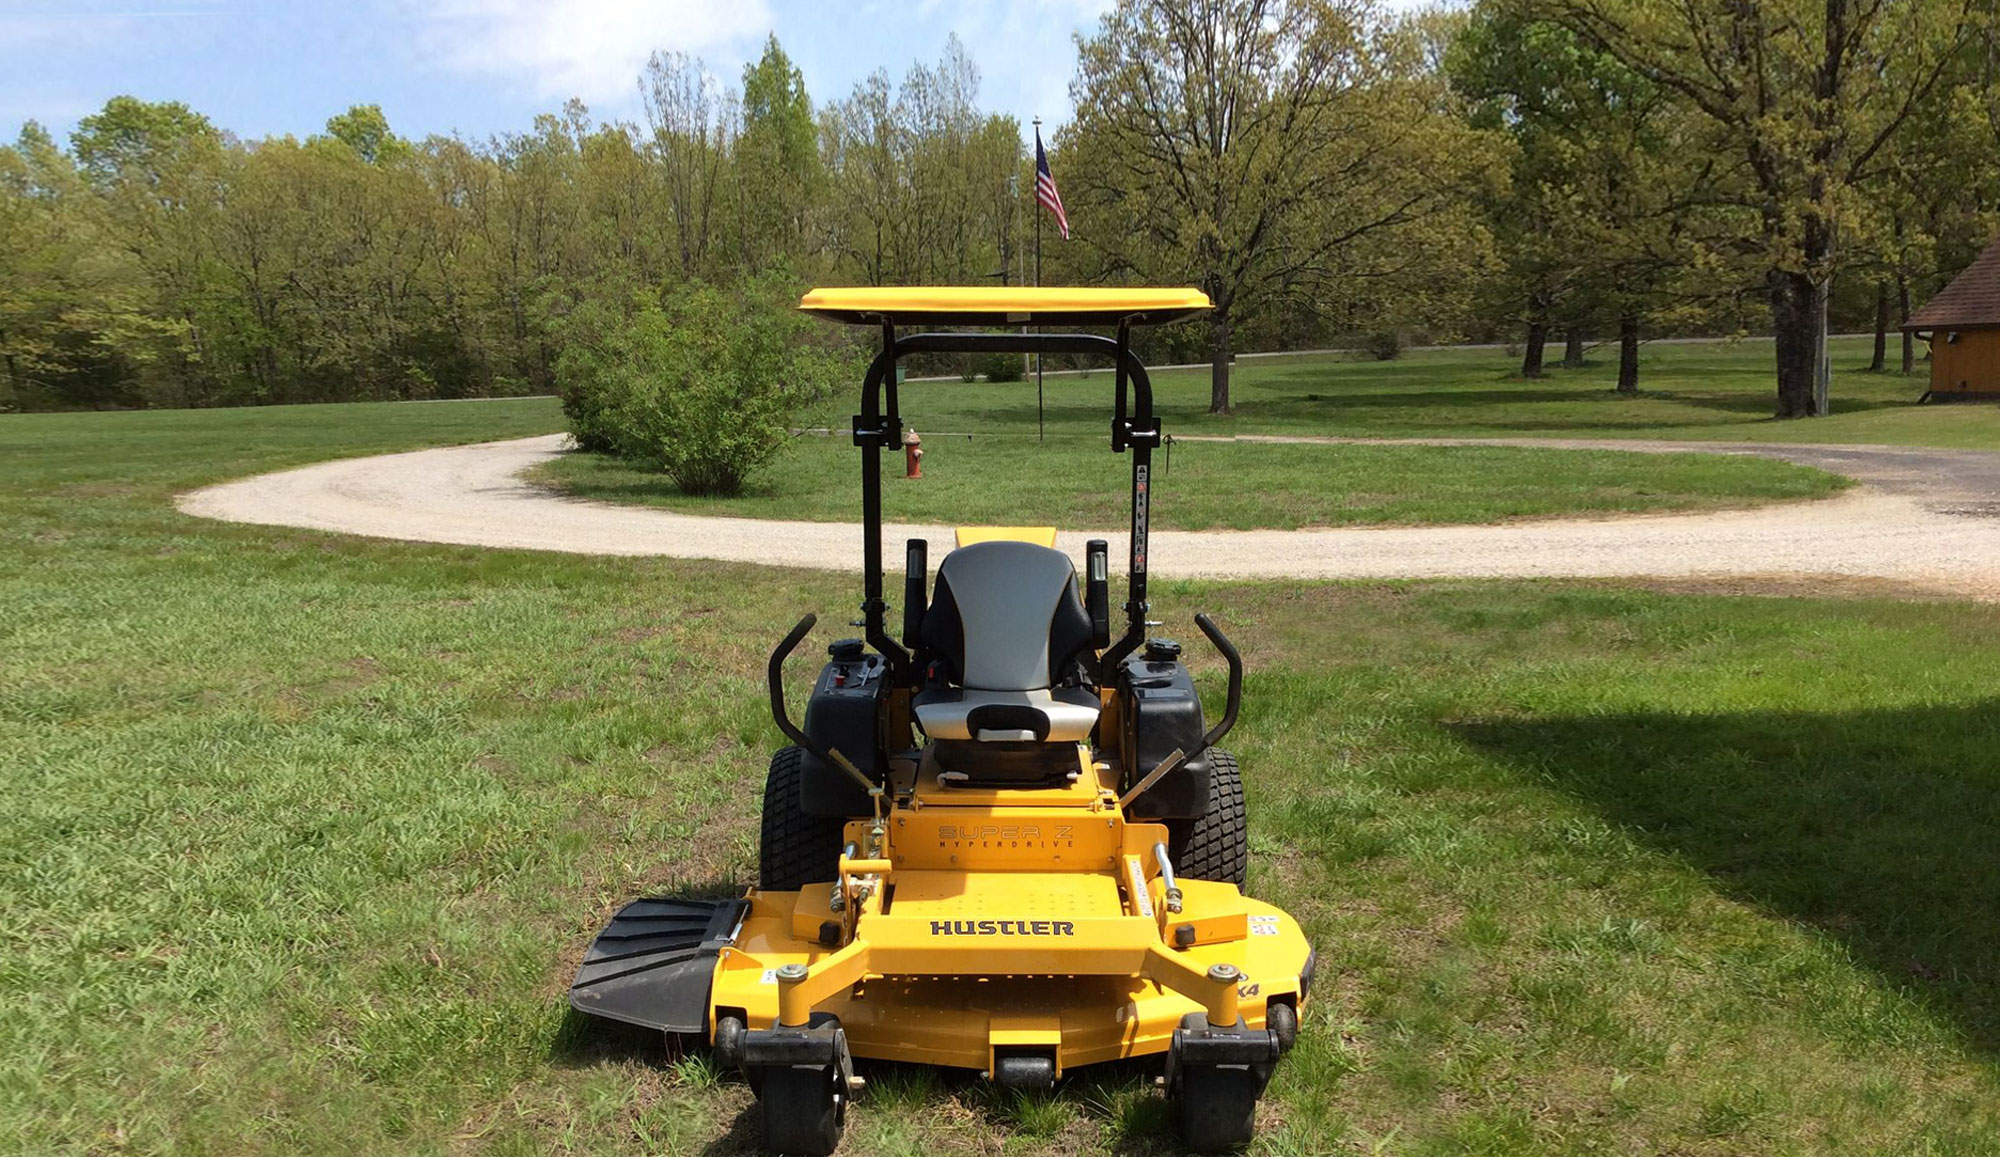 Tractor canopies and mower canopies  by SunGuard USA fit  all sizes of tractors and mowers.